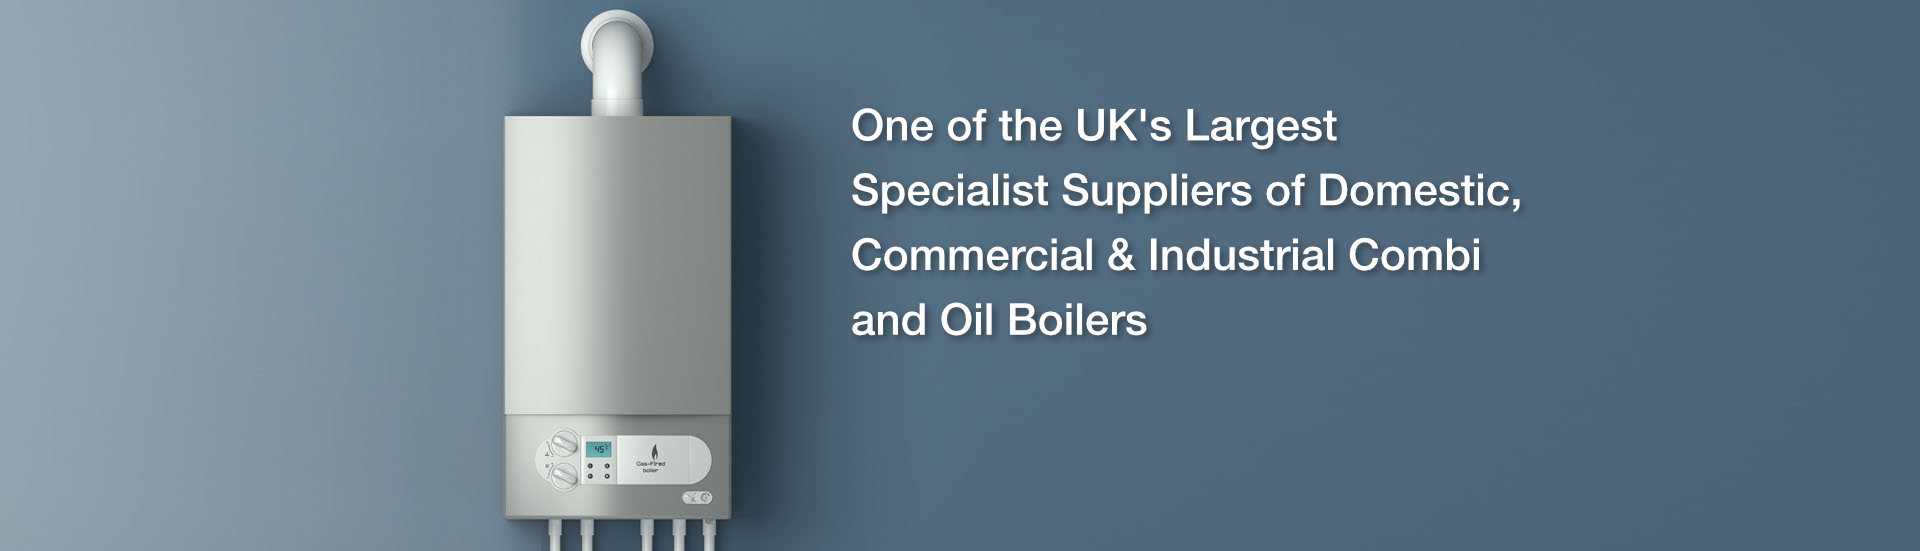 One Of The UK's Largest Specialist Suppliers Of Domestic, Commercial & Industrial Combi And Oil Boilers